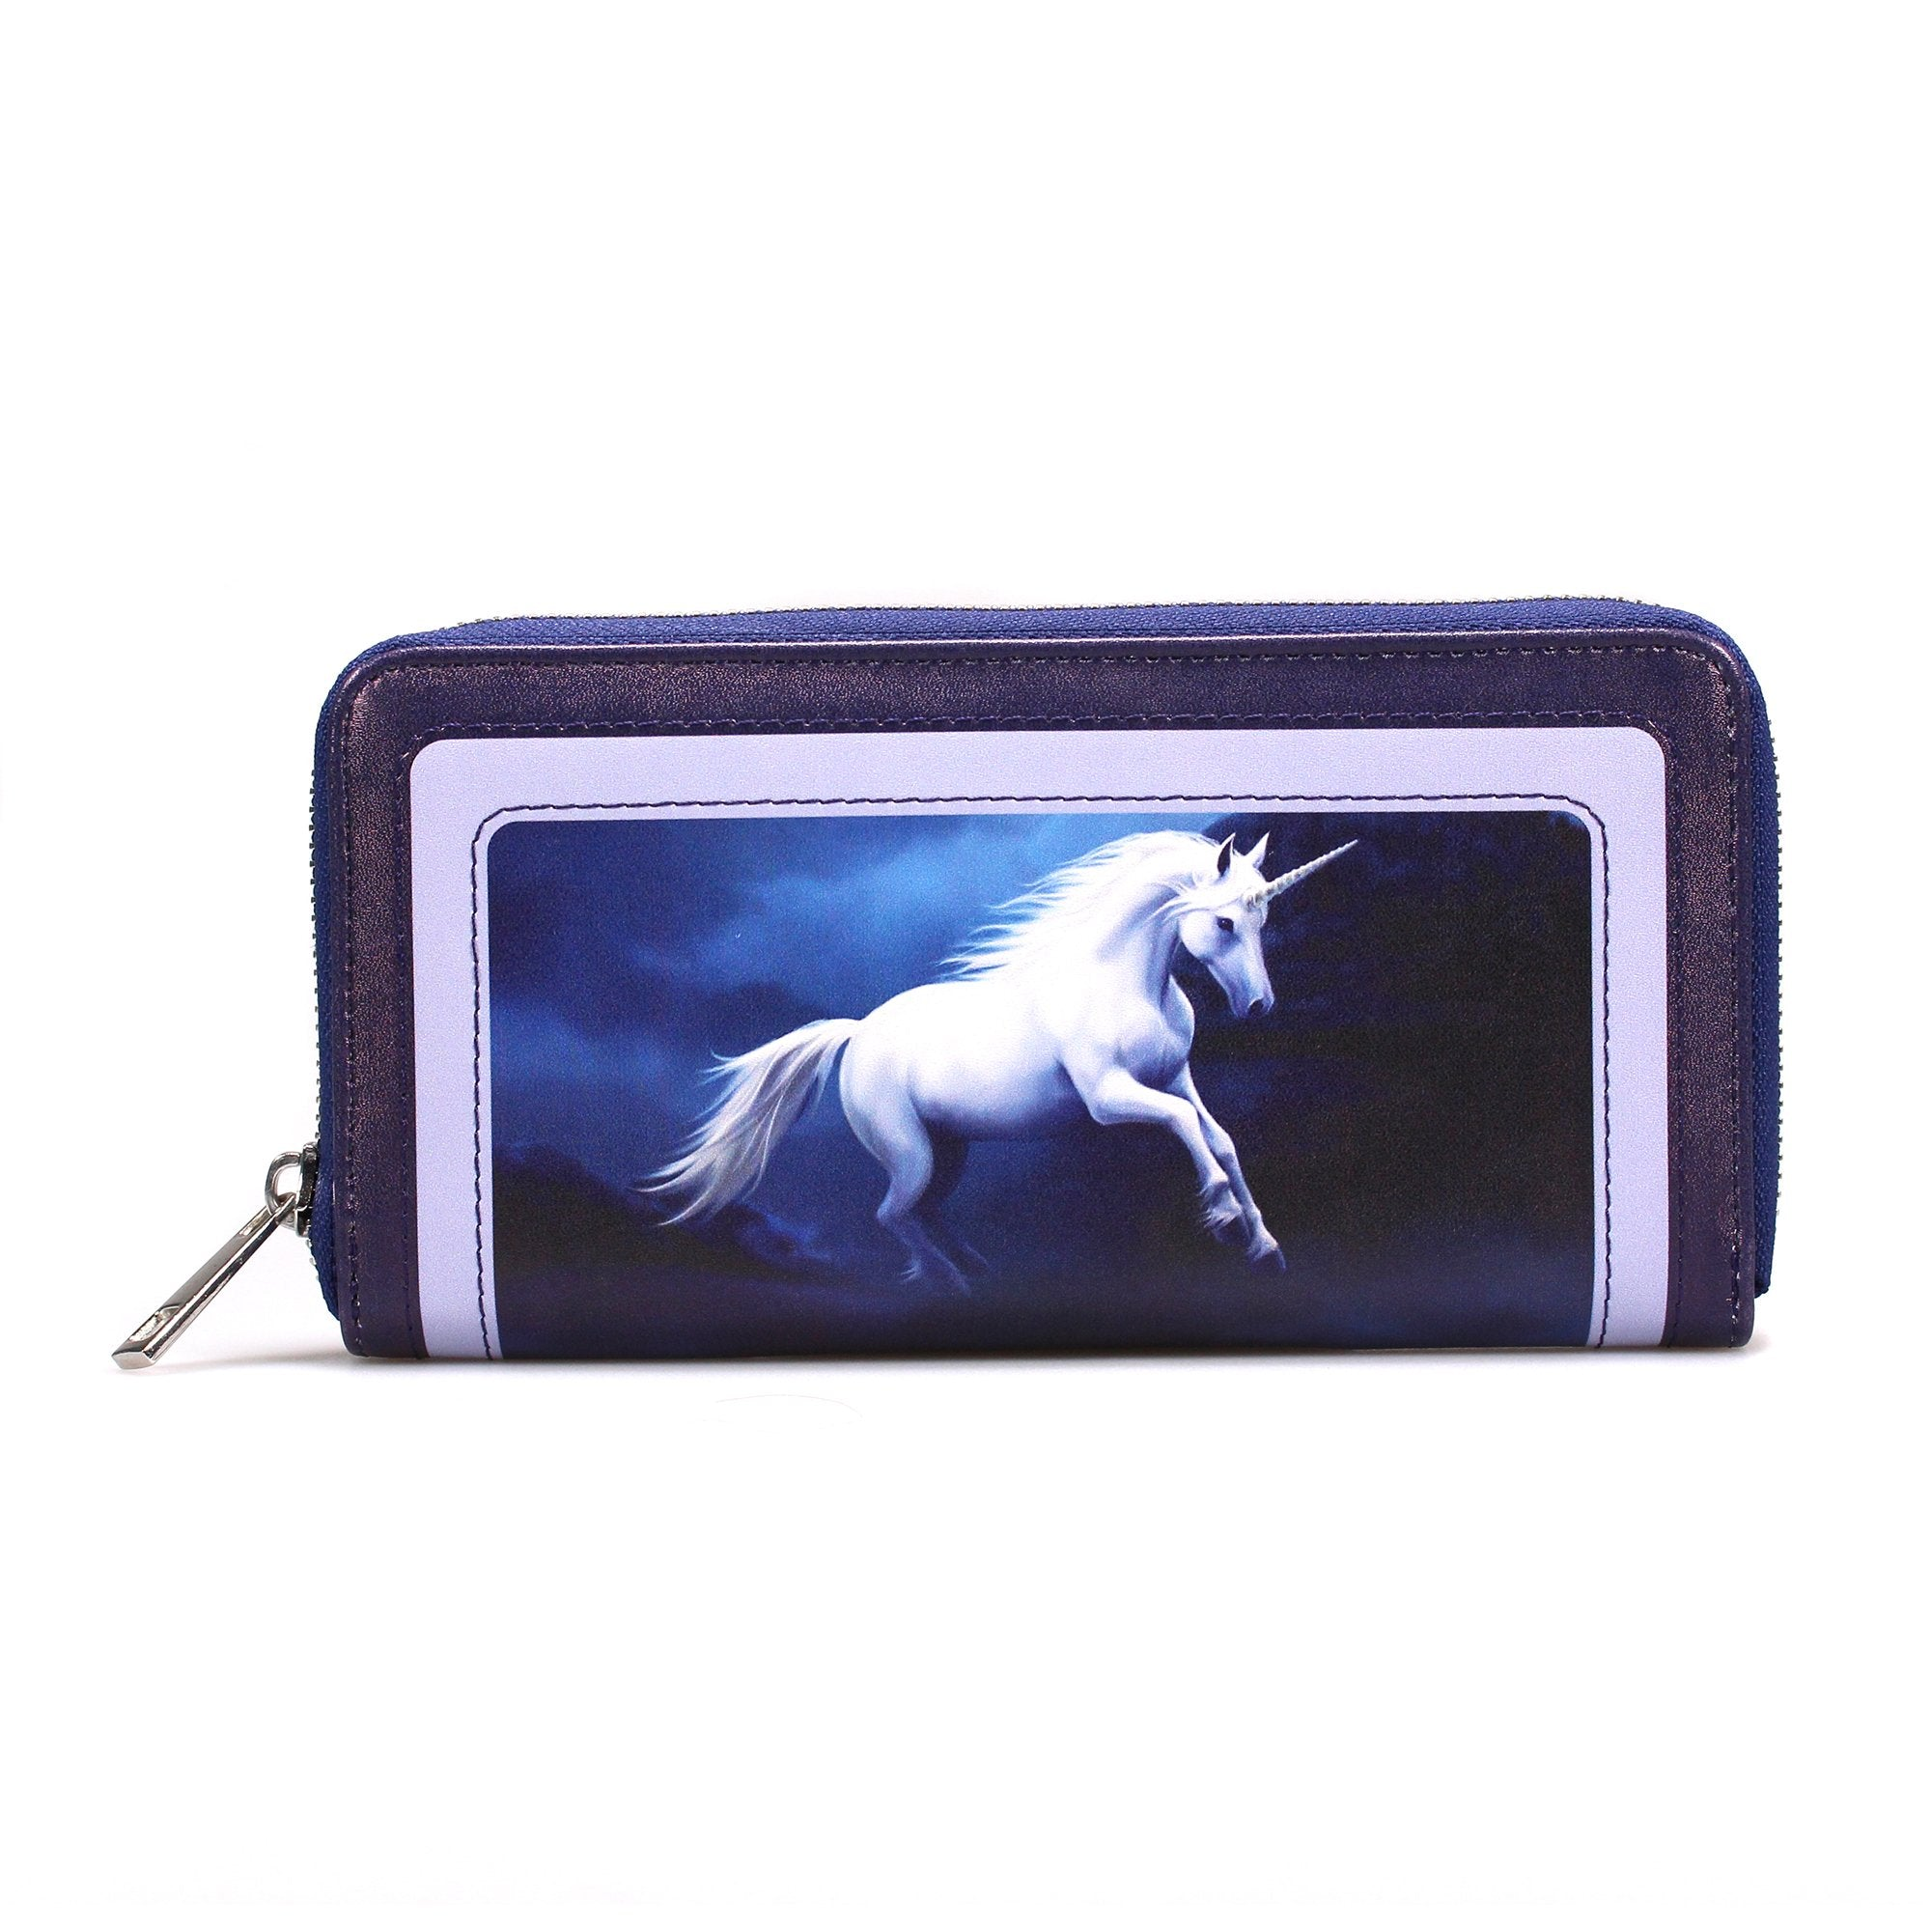 Anne Stokes Purse - Moonlight Unicorn - Half Moon Bay US